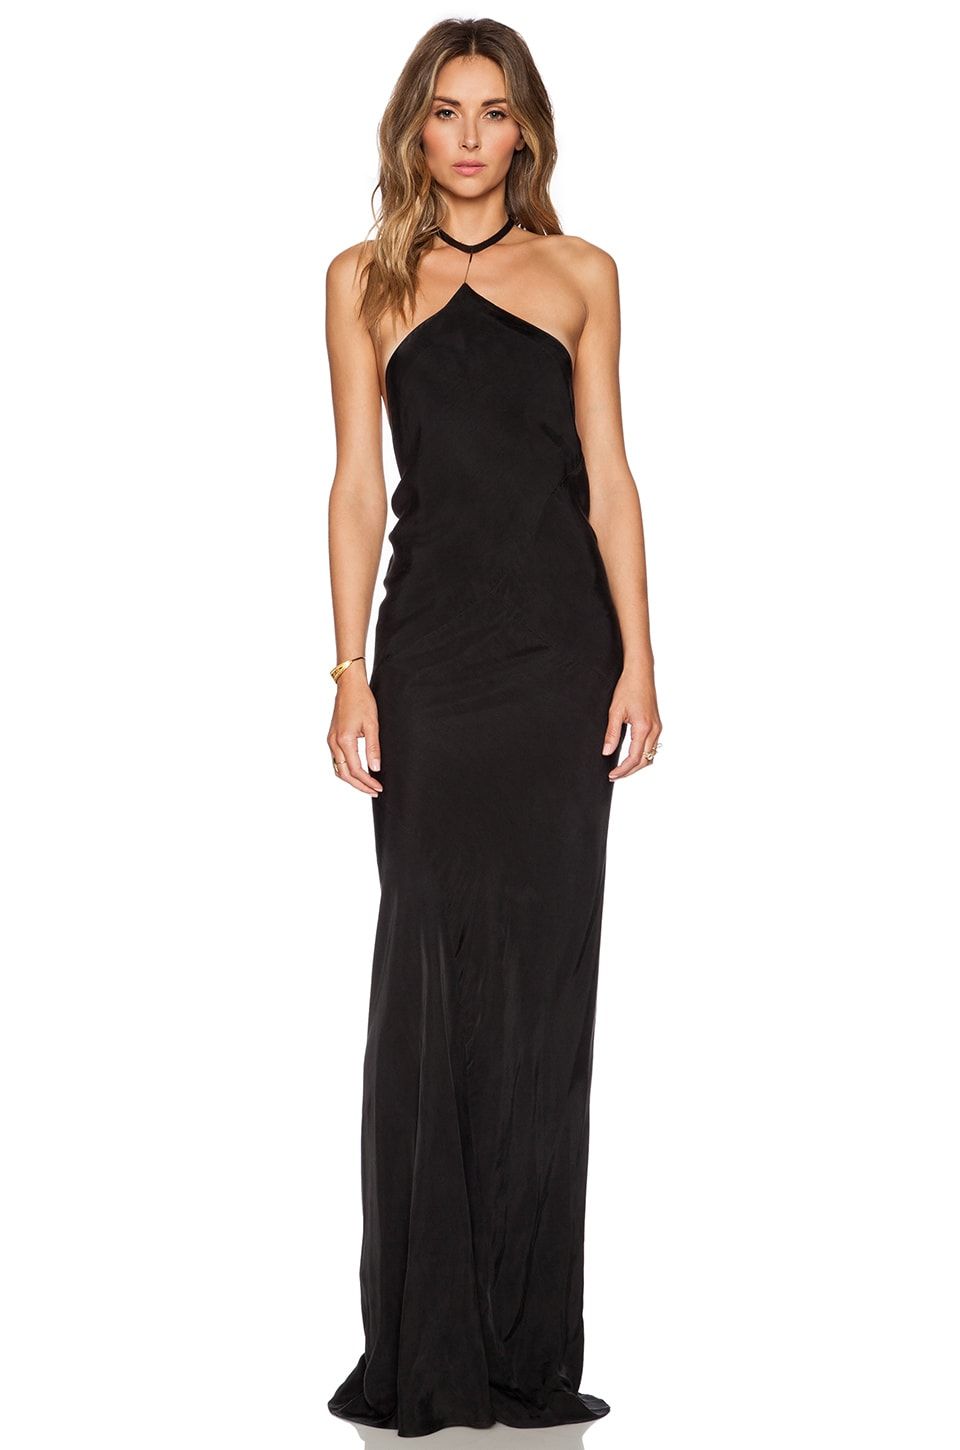 TITANIA INGLIS Drop Dress in Black